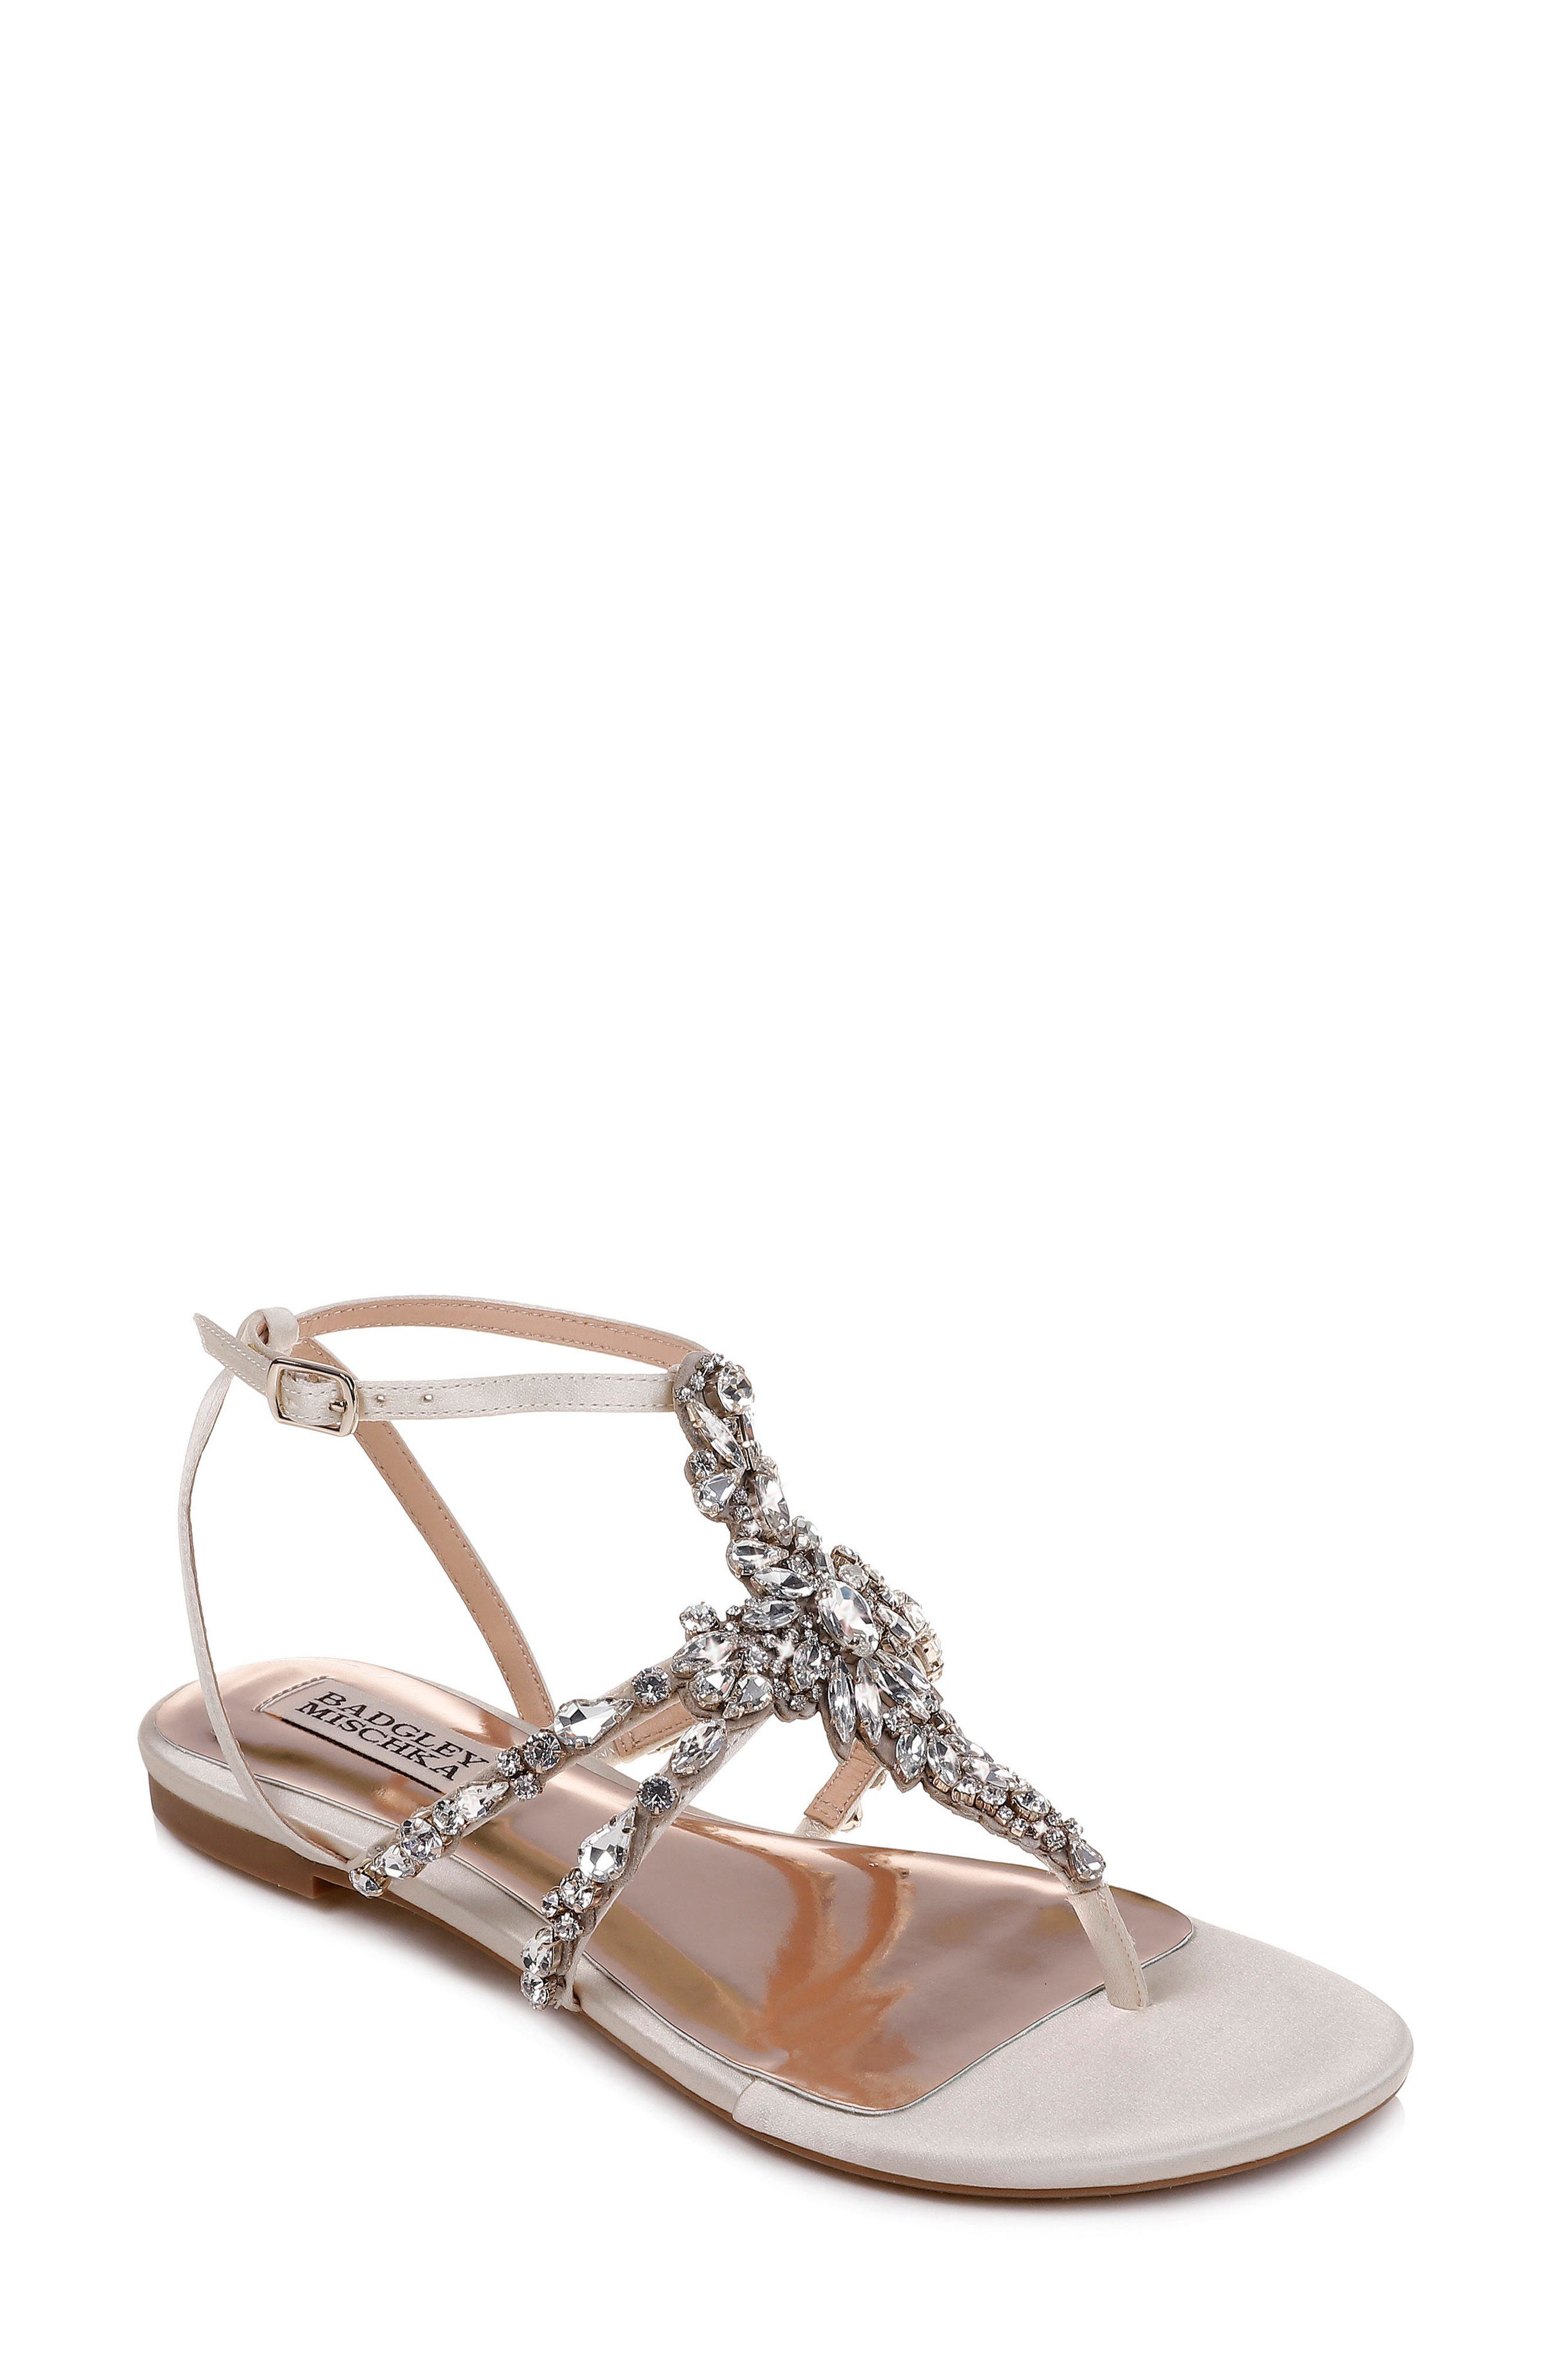 Badgley Mischka Hampden Crystal Embellished Sandal, White